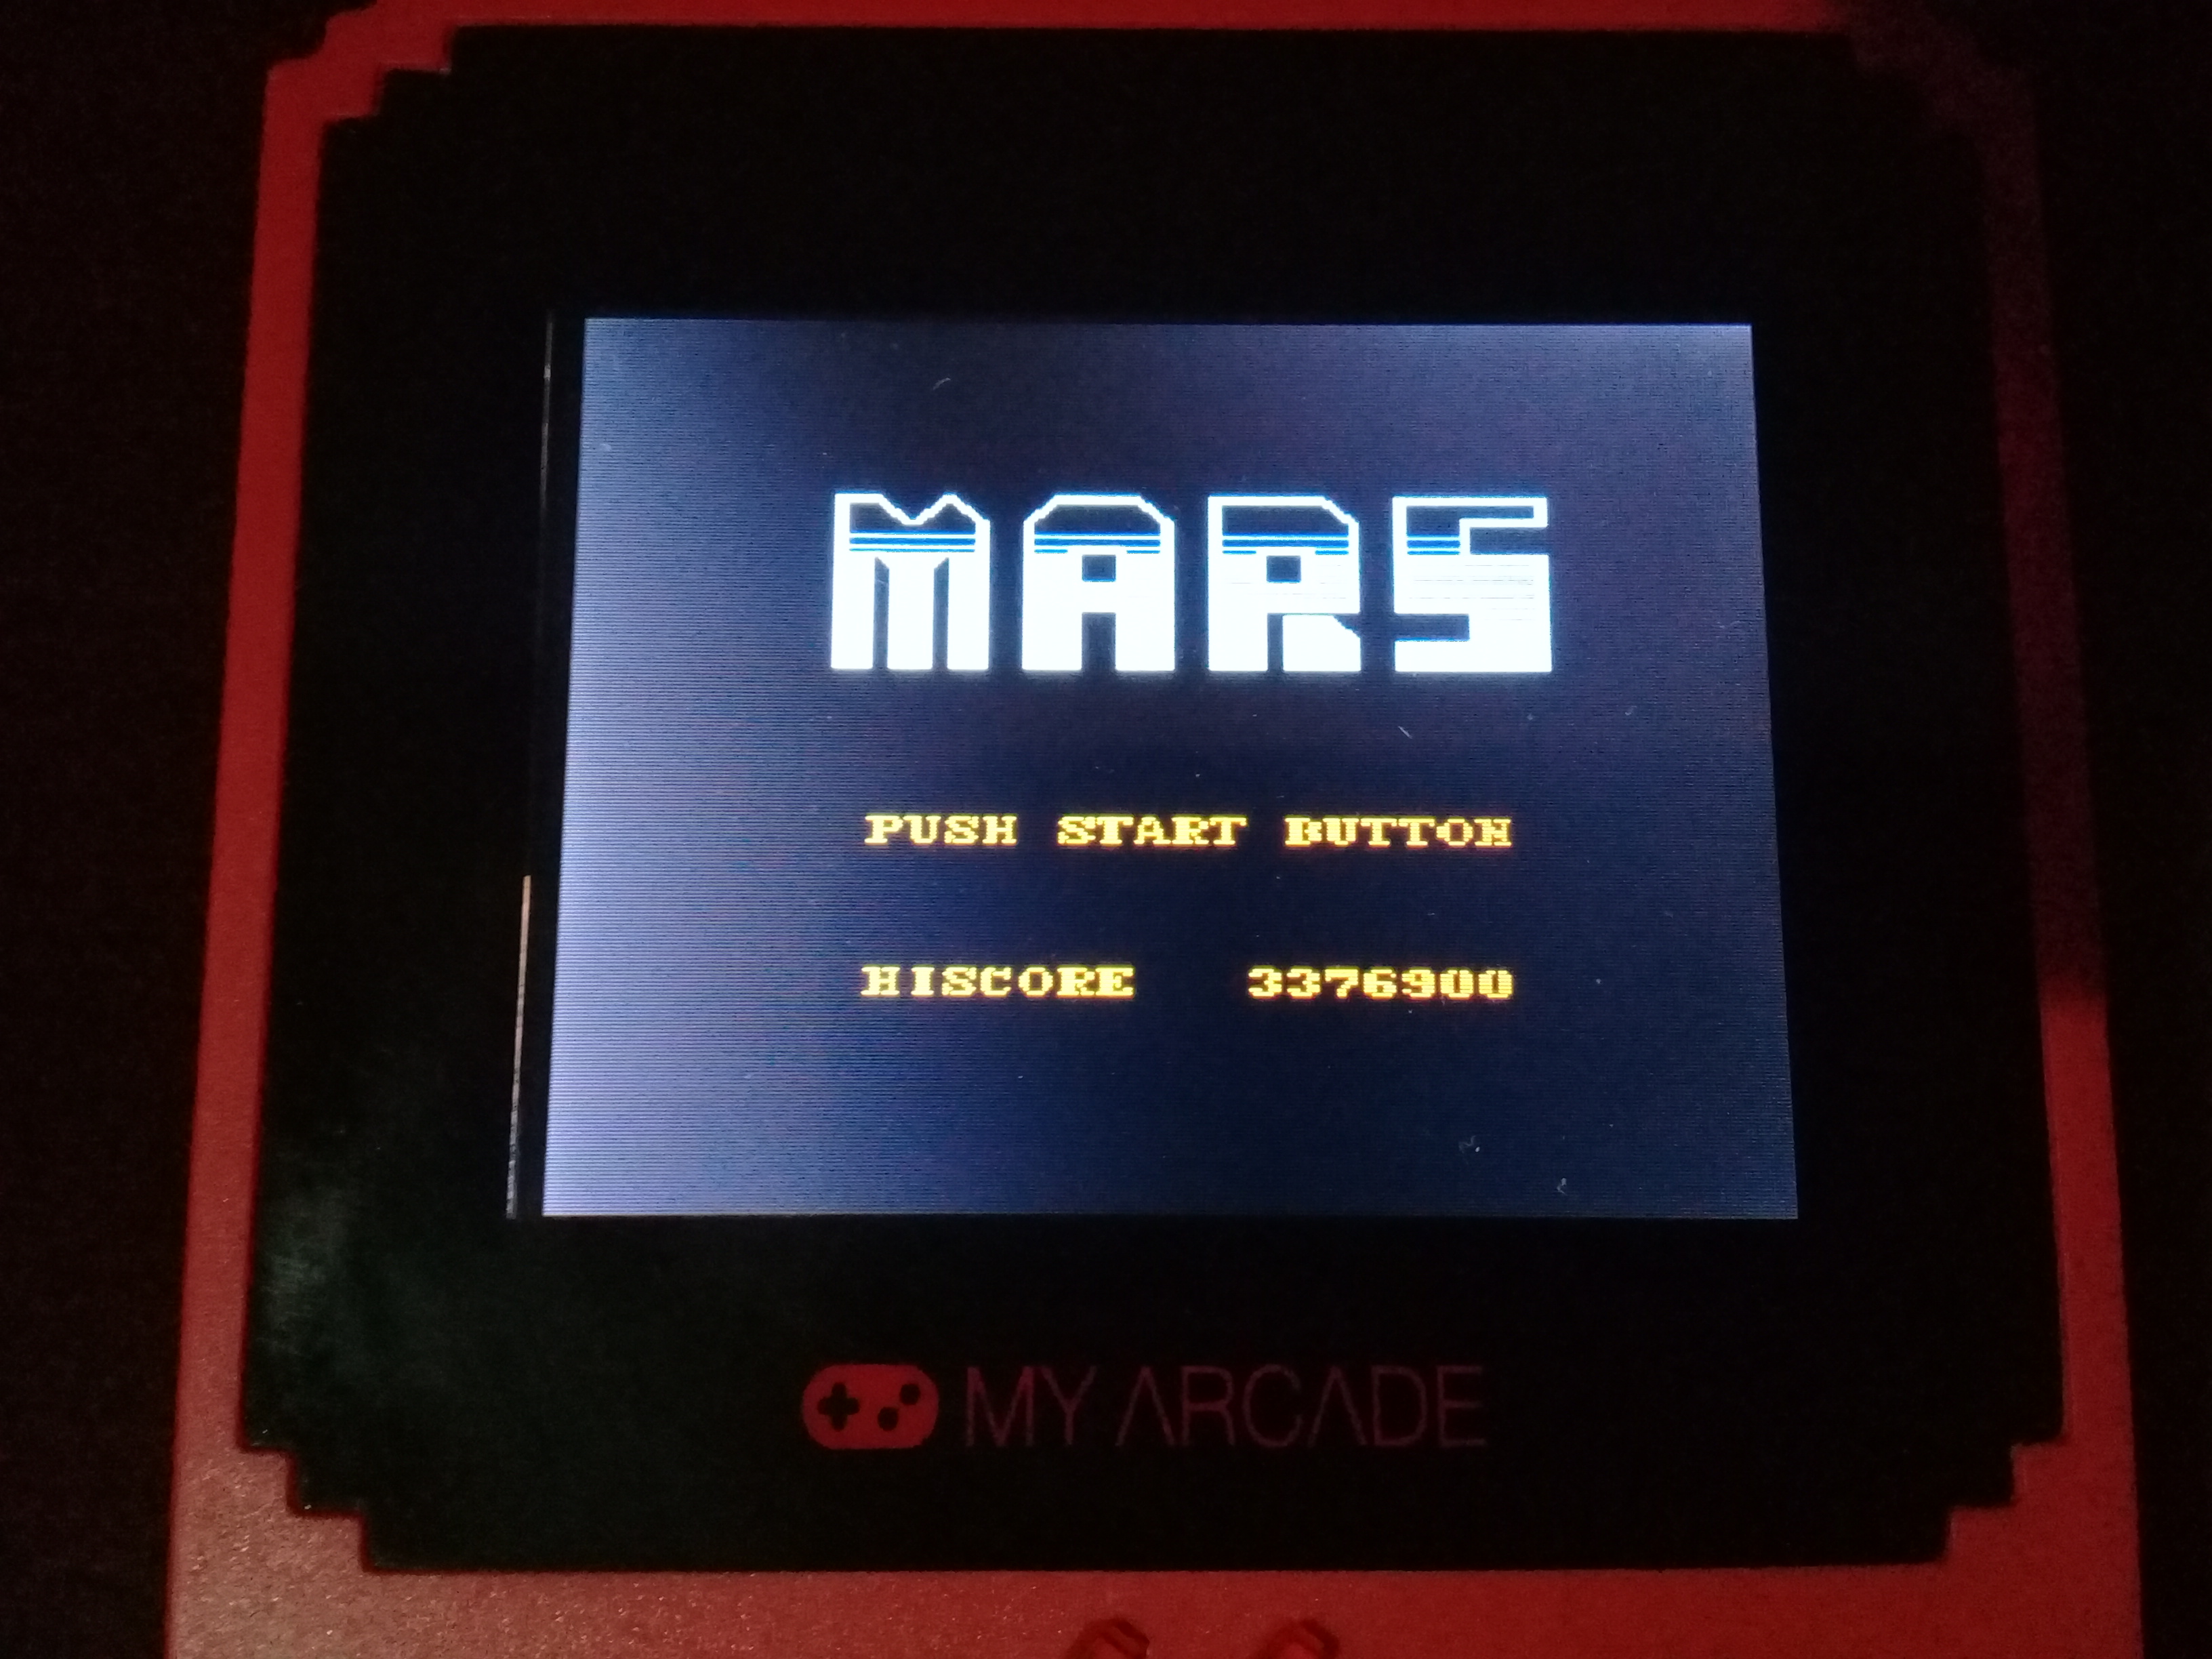 omargeddon: My Arcade: Mars (Dedicated Handheld) 3,376,900 points on 2020-07-06 12:52:50